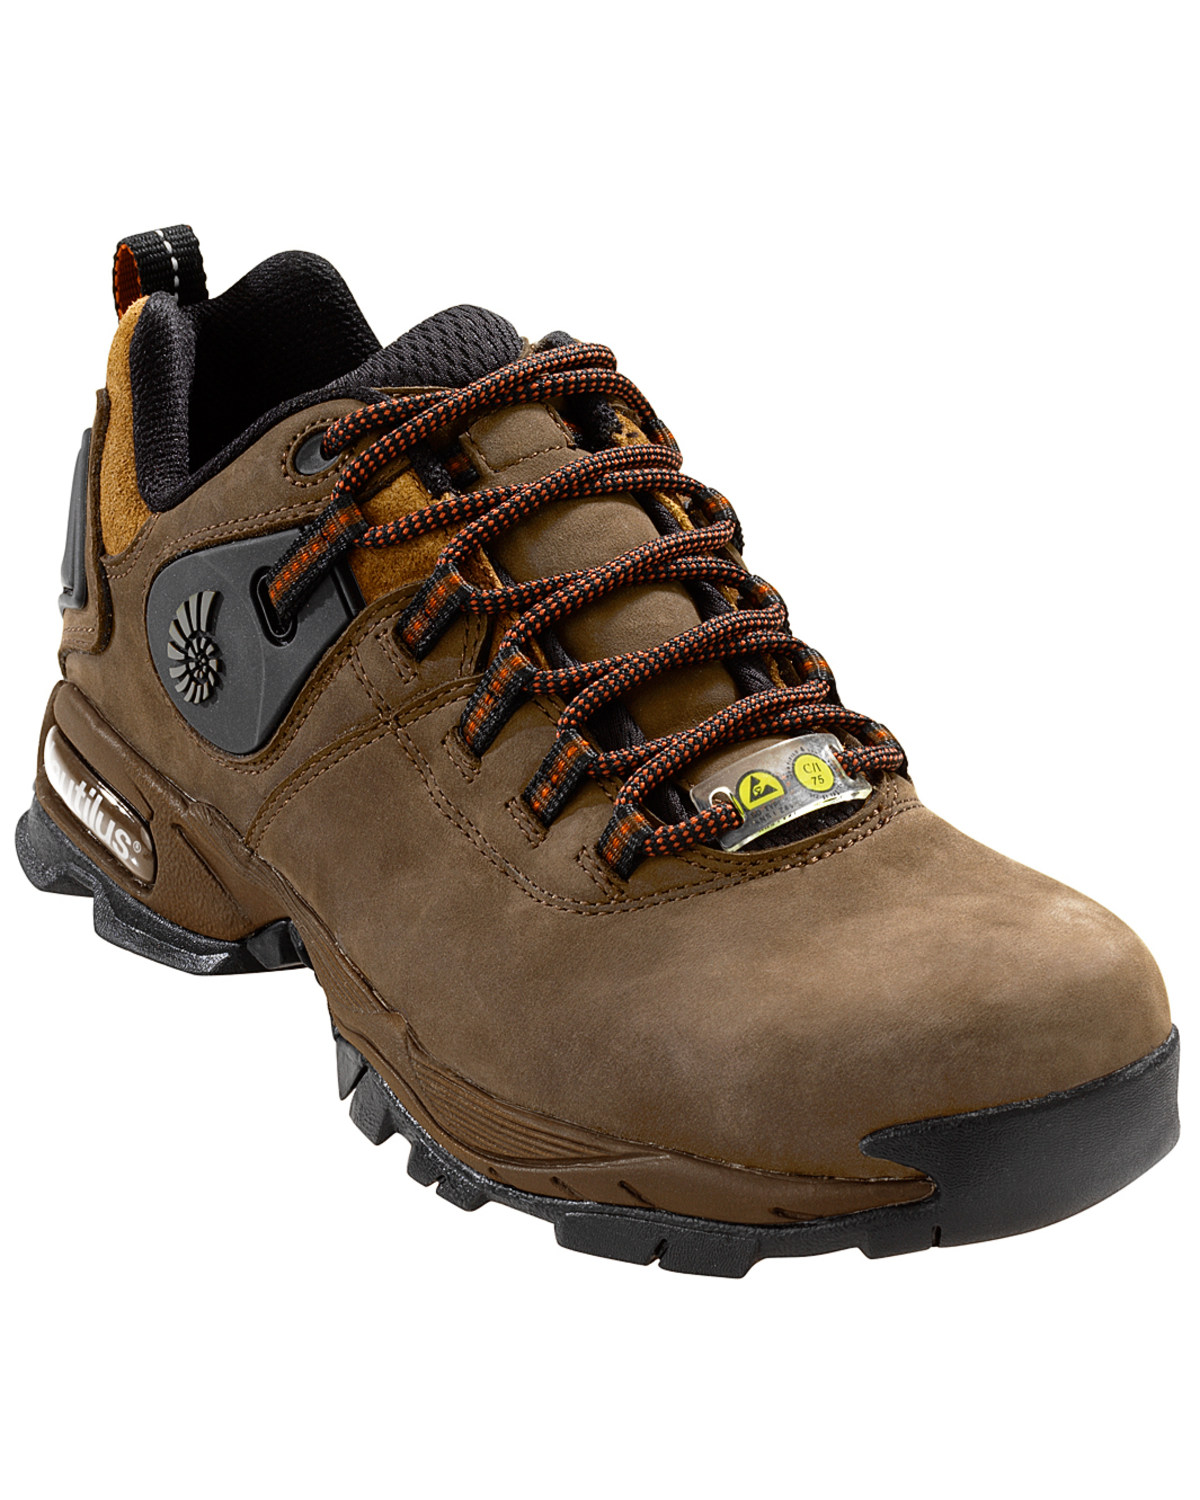 9f619cae01427f Zoomed Image Nautilus Men's Composite Safety Toe ESD Athletic Work Shoes,  Brown, ...